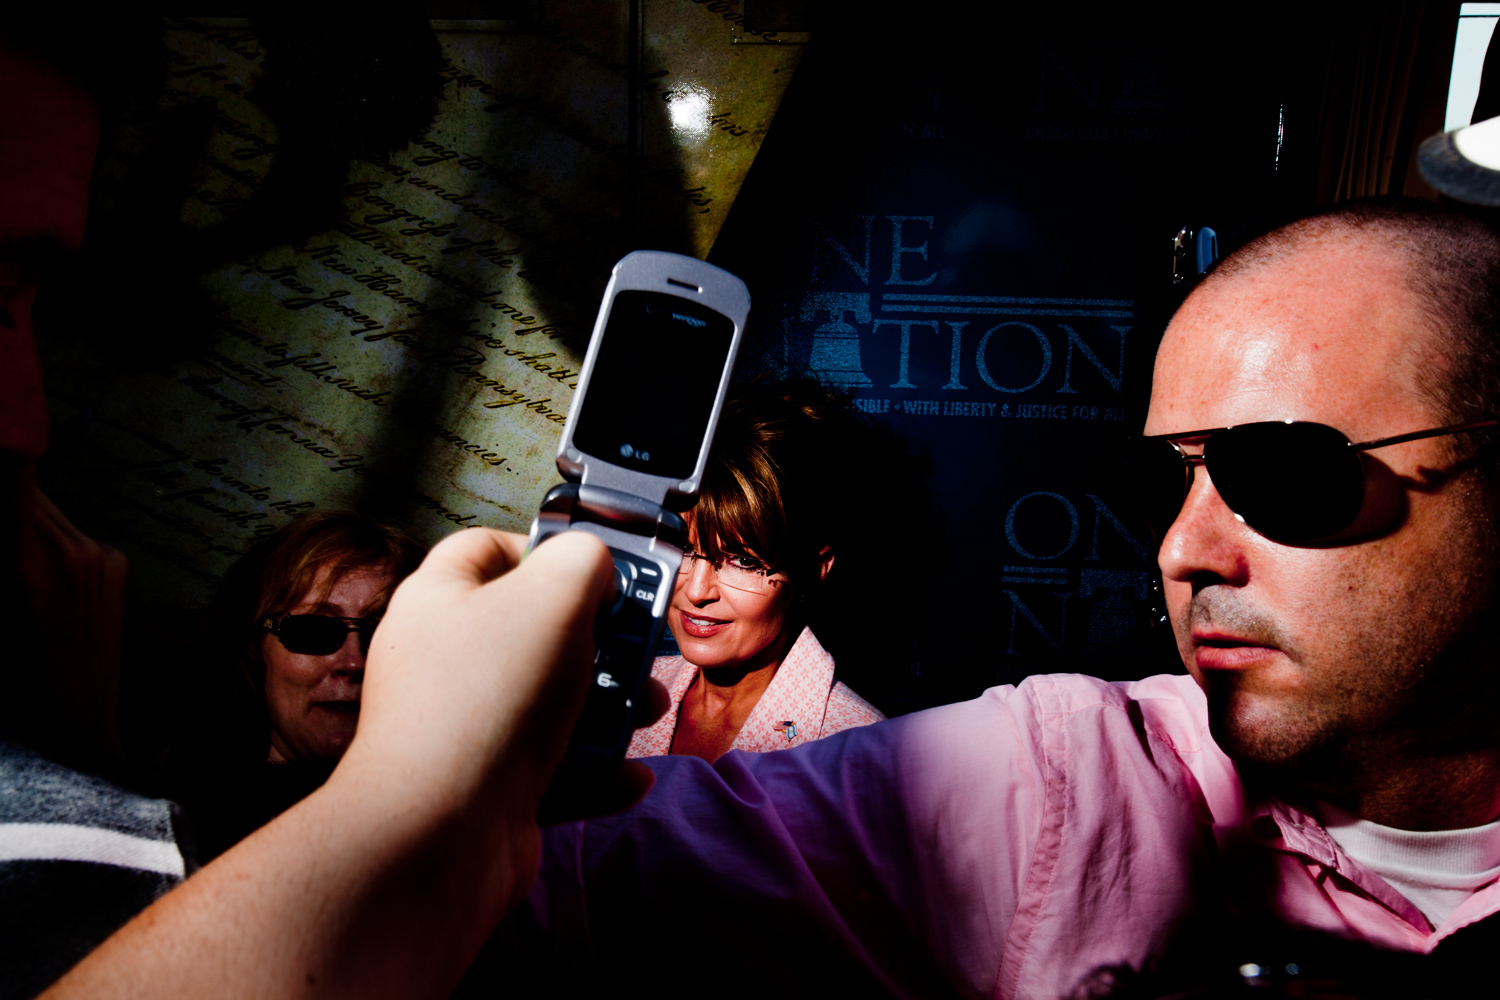 Sarah Palin and a staff member, right, talks to fans during her visit to Gettysburg, PA, Tuesday, May 31, 2011.